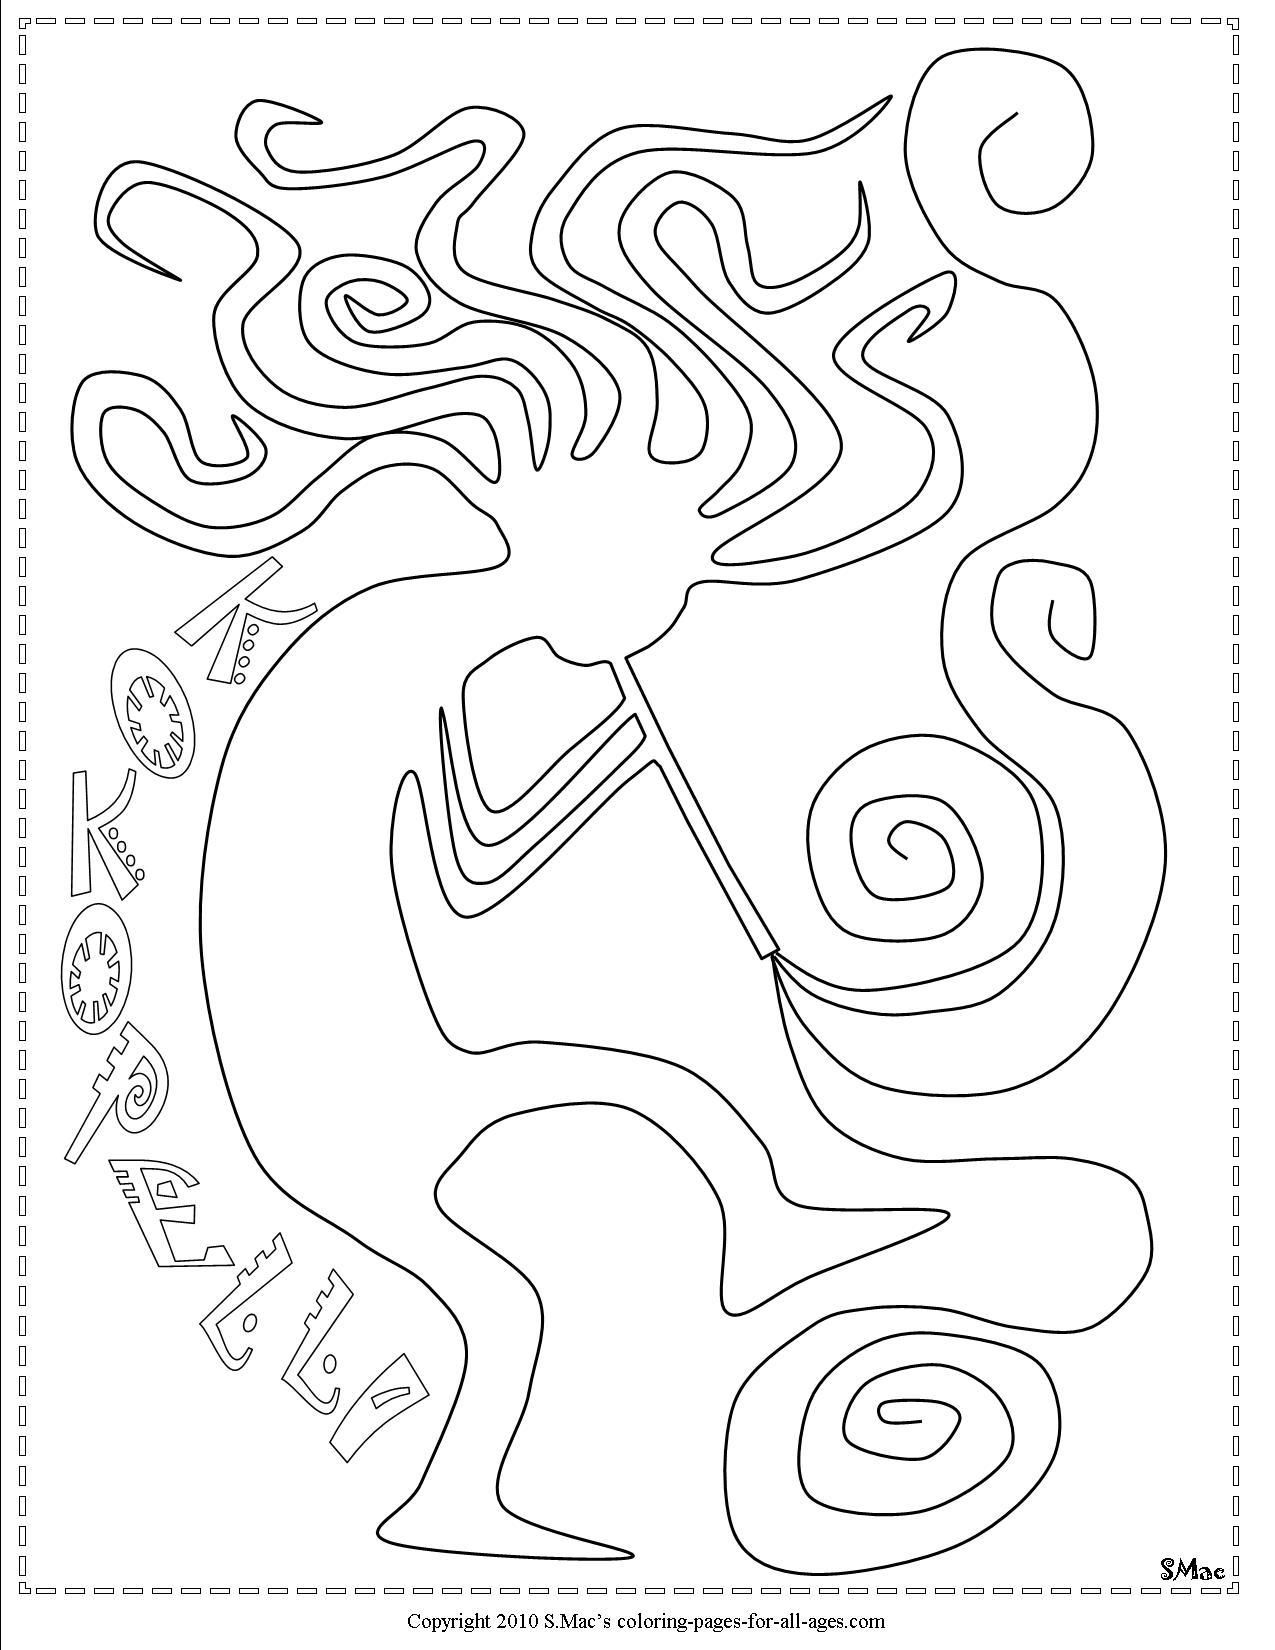 Kokopelli Coloring Pages S Mac S Place To Be Kokopelli Art Coloring Pages Native American Quilt Patterns